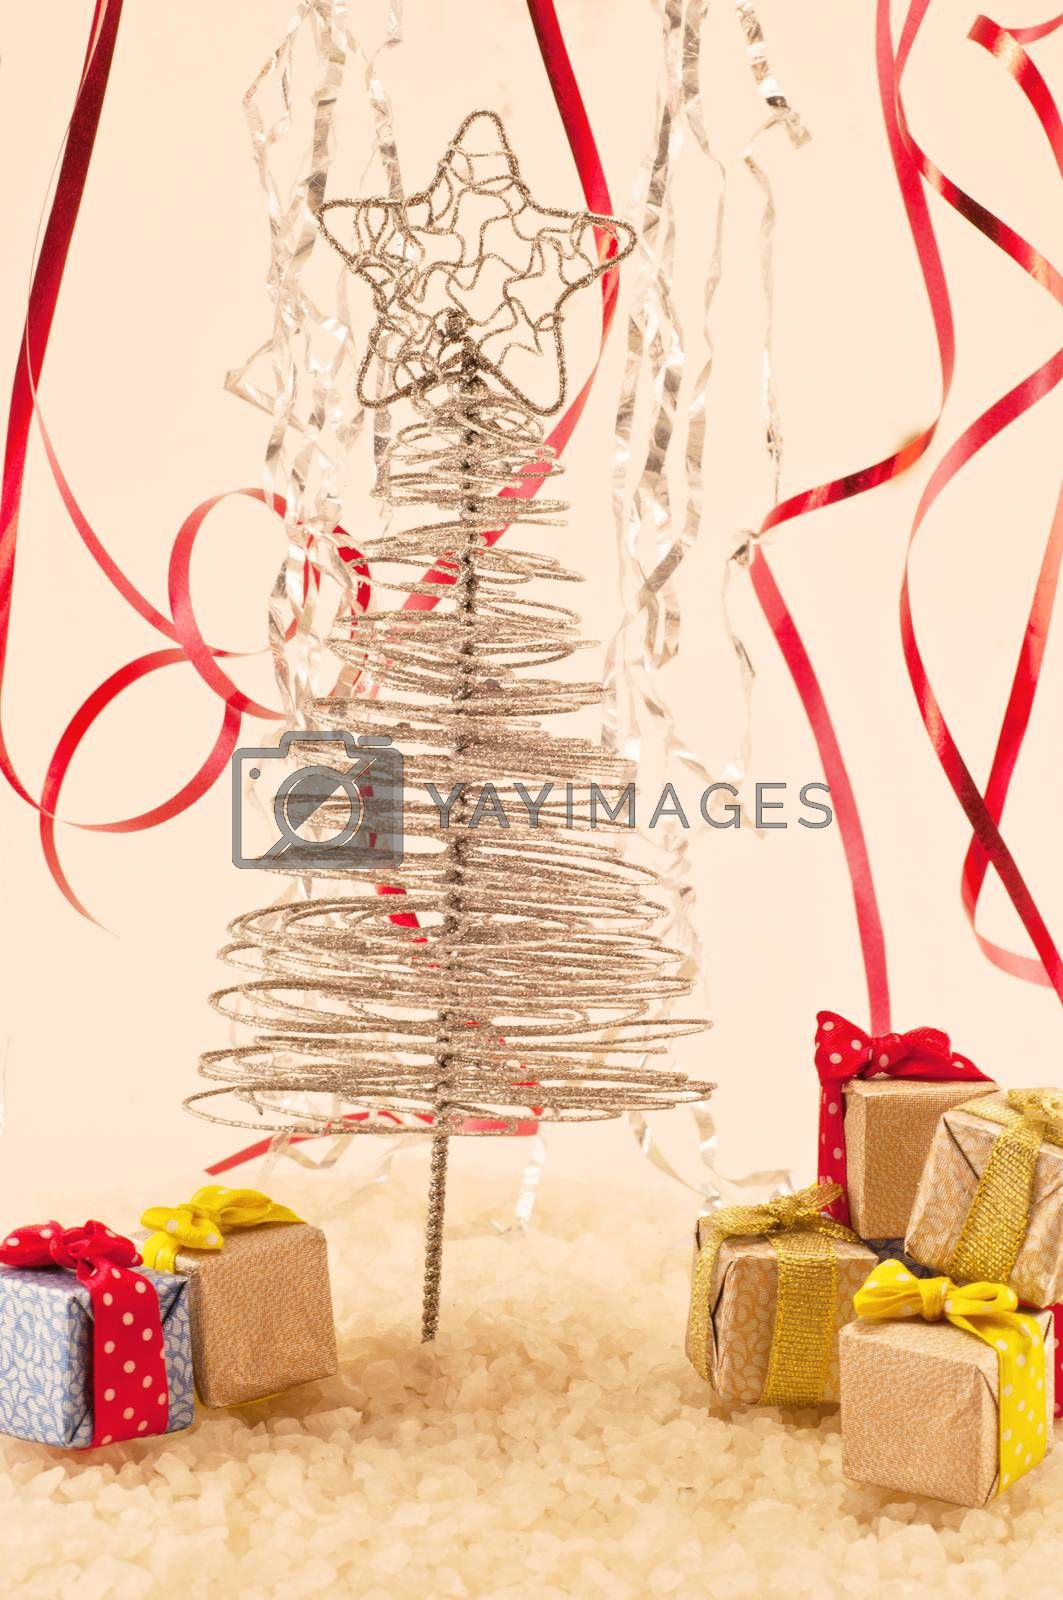 Christmas tree with presents on snow and colored fiefs